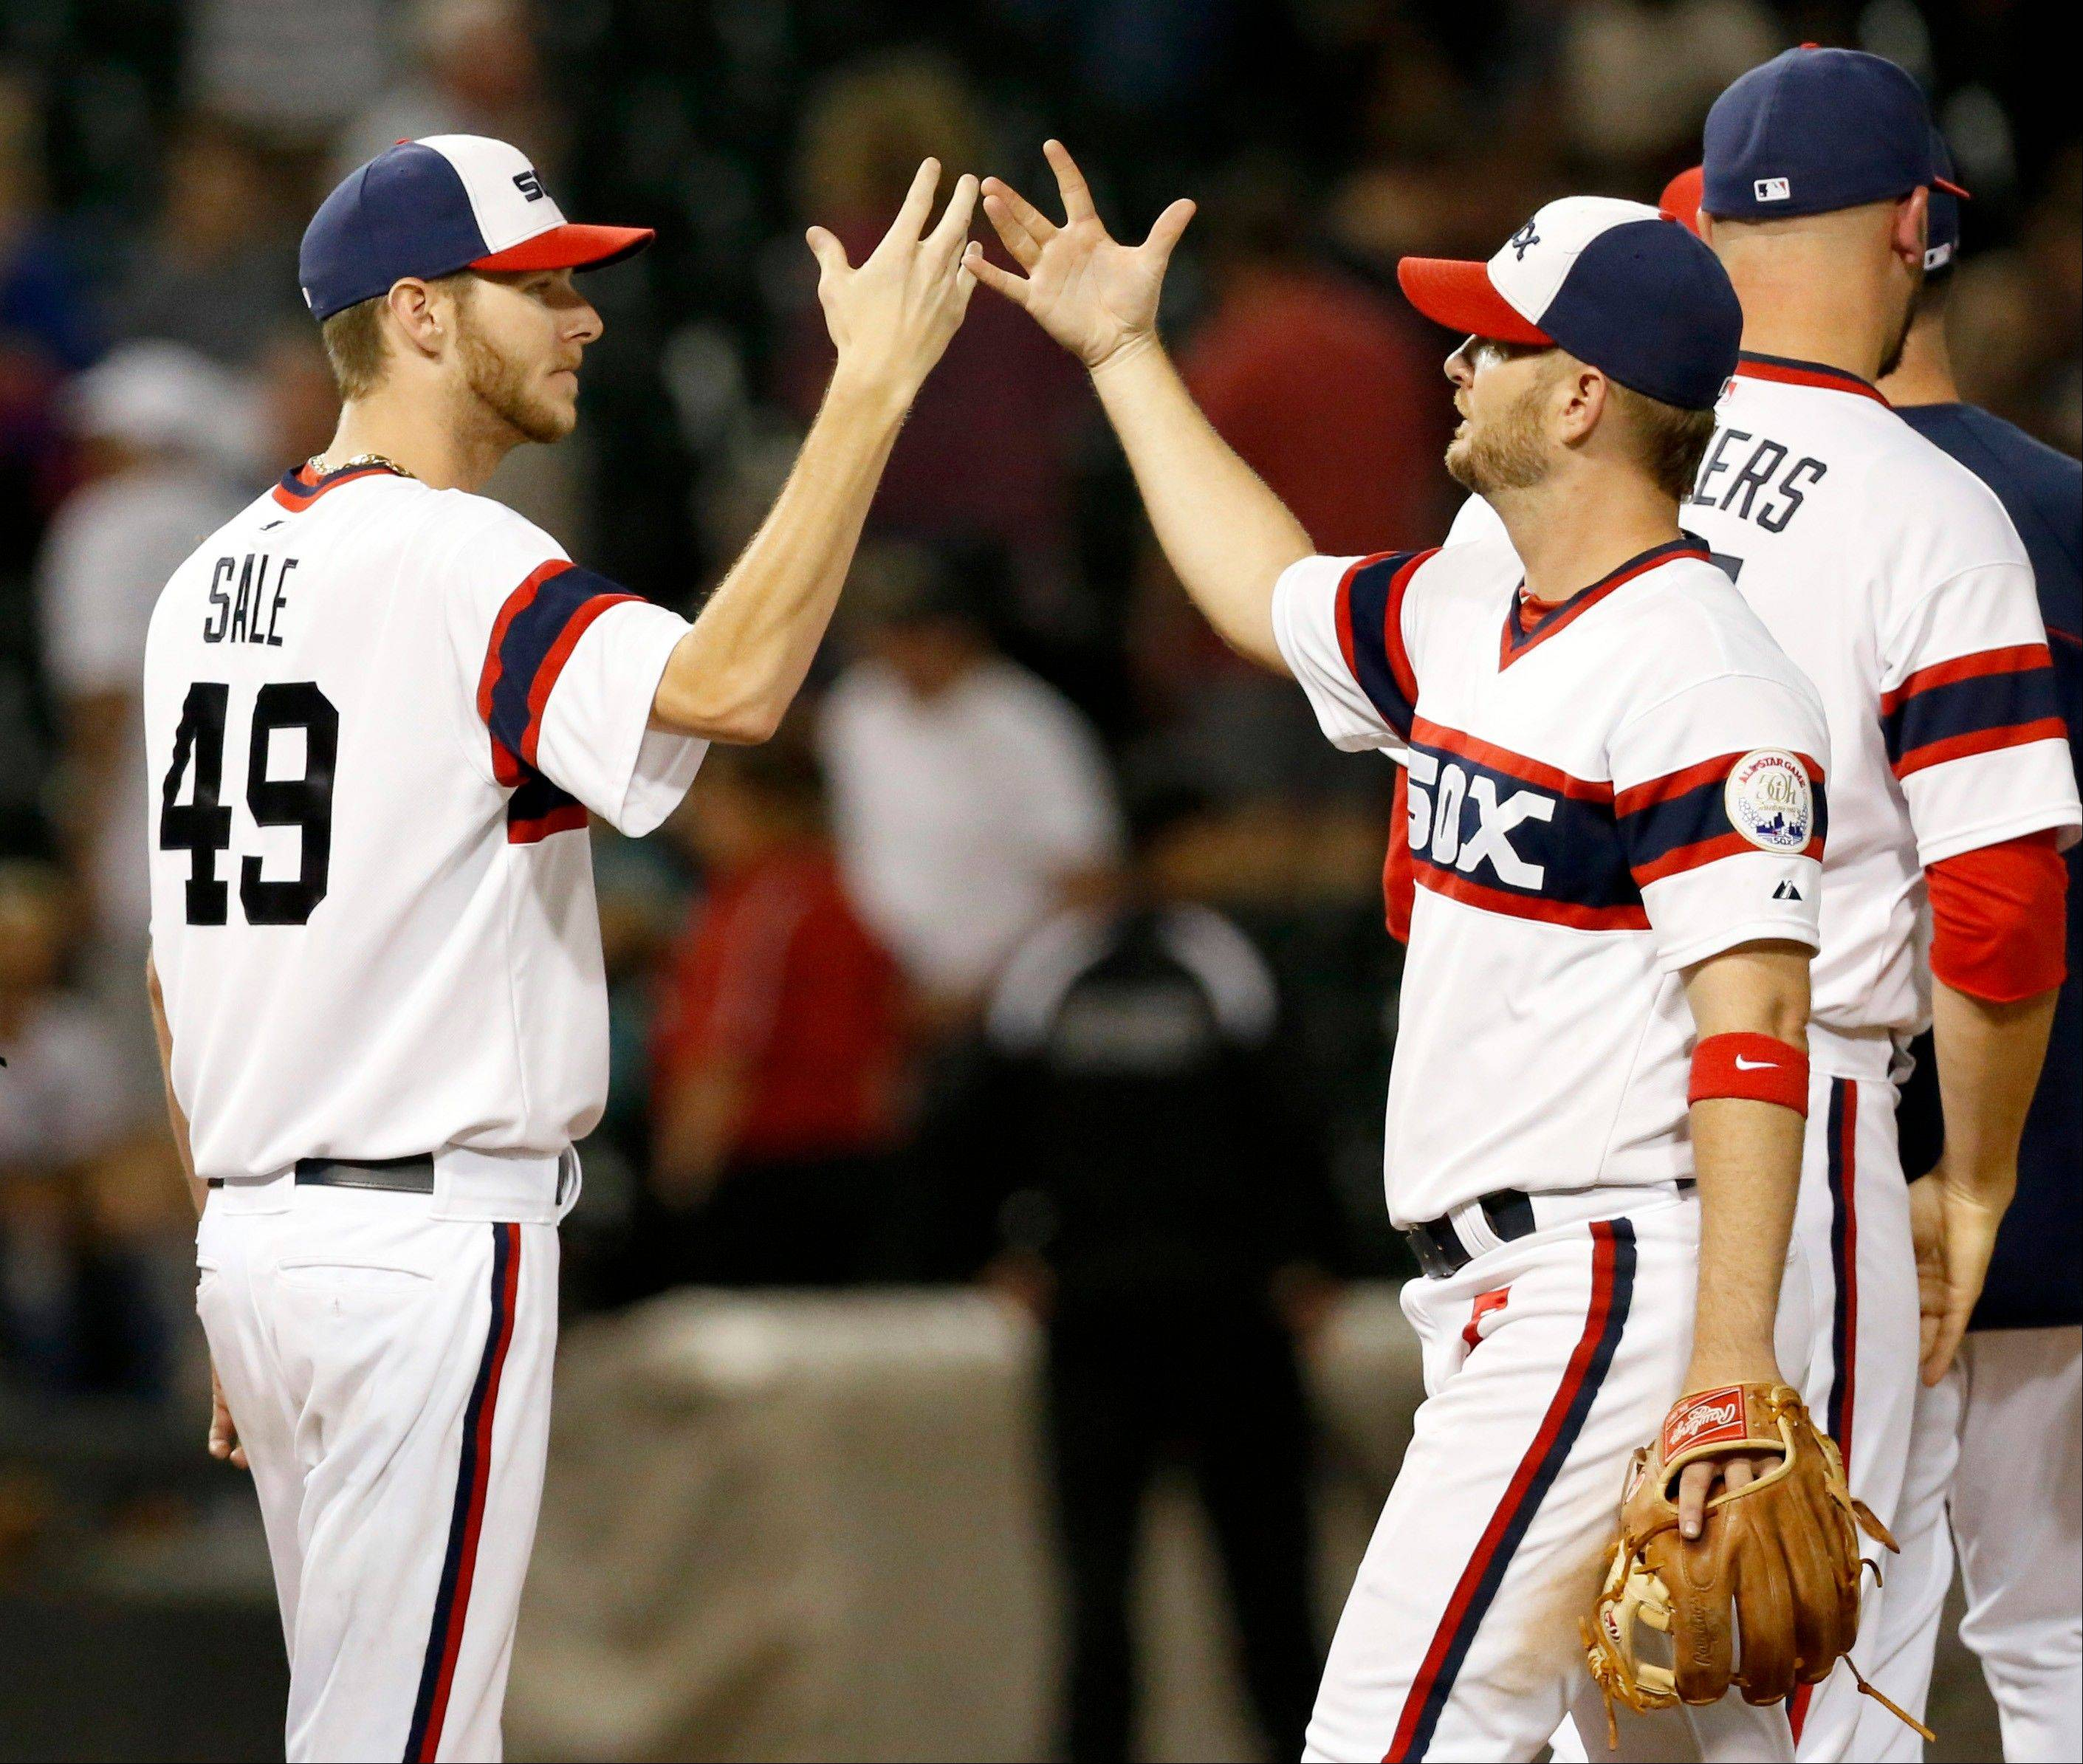 White Sox starting pitcher Chris Sale celebrates with third baseman Jeff Keppinger after their victory over the Astros on Wednesday night.